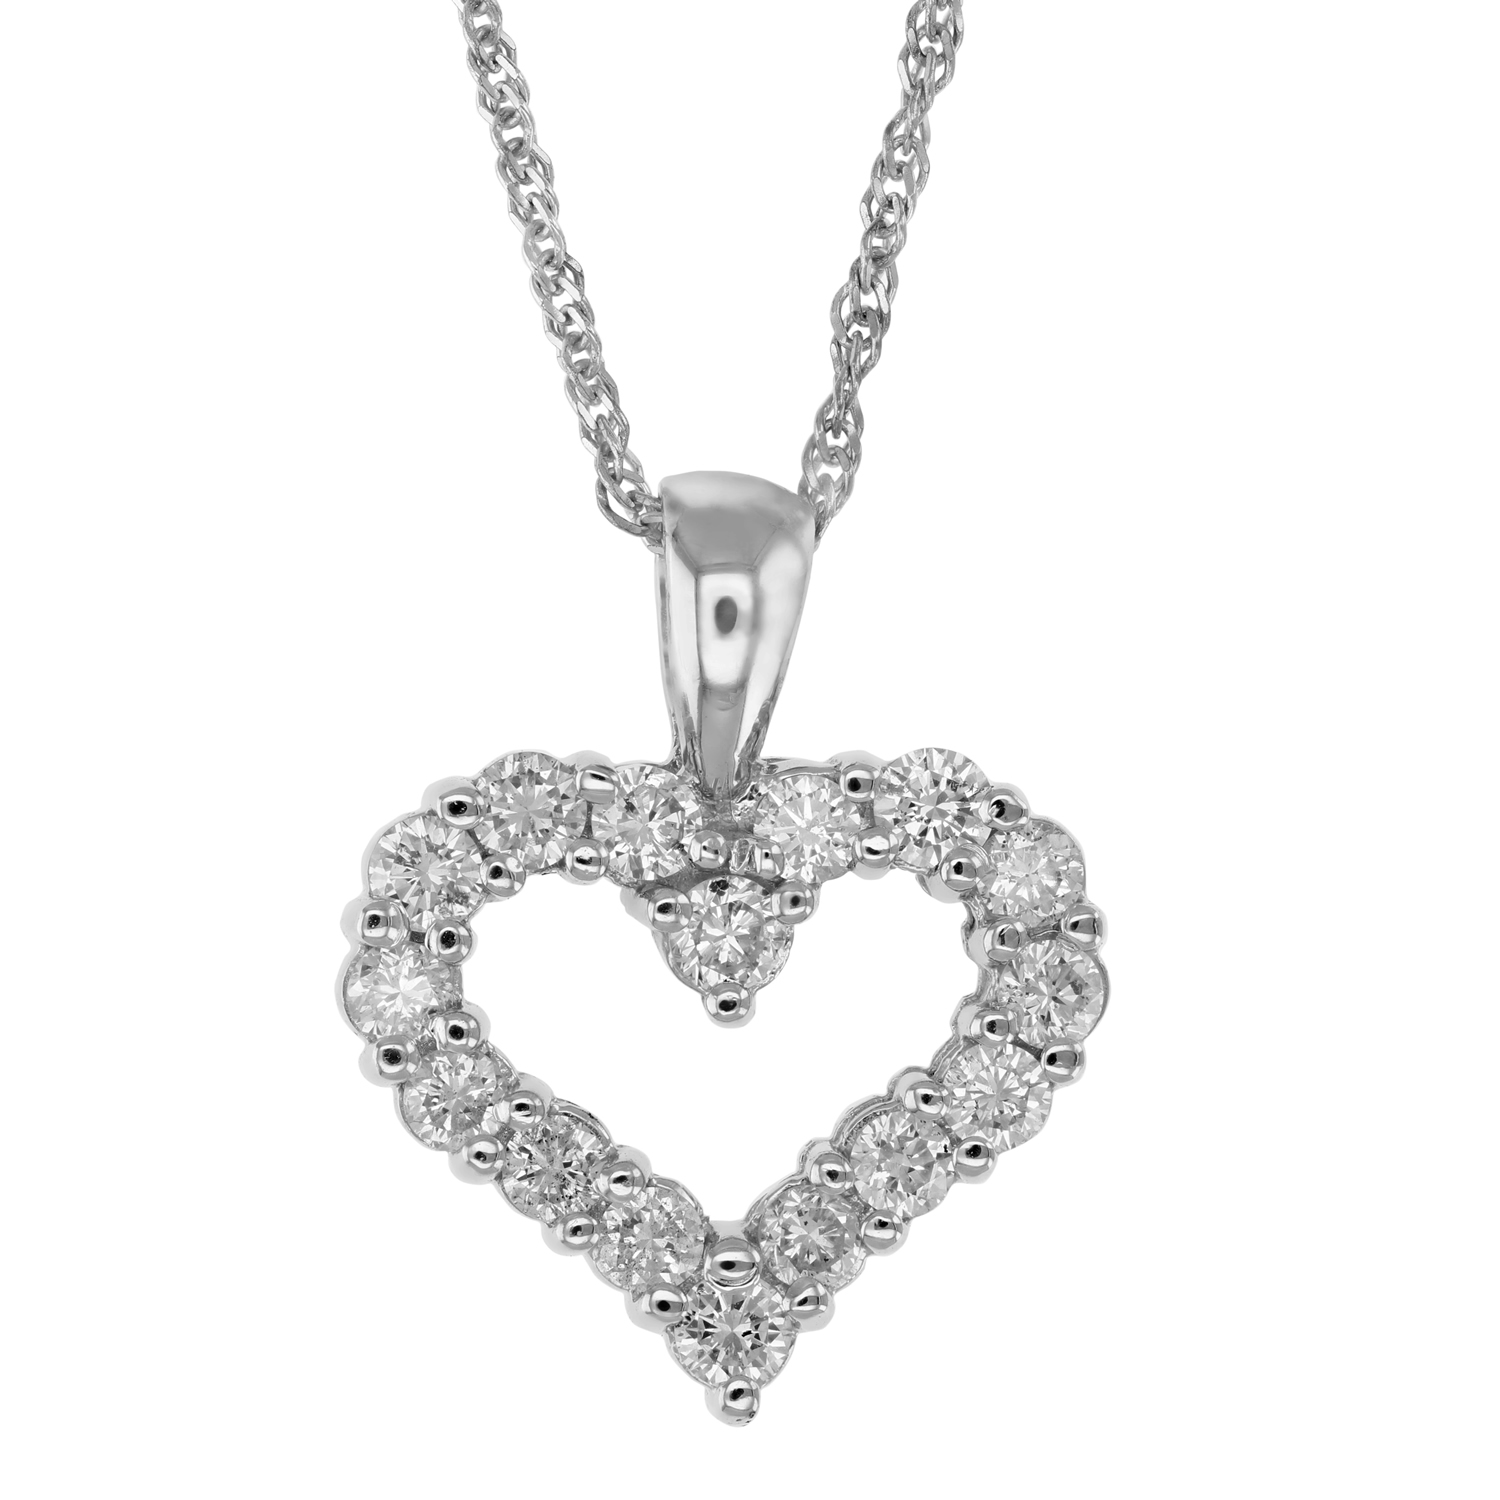 necklace pendant estate diamond tiffany co platinum jewelry heart